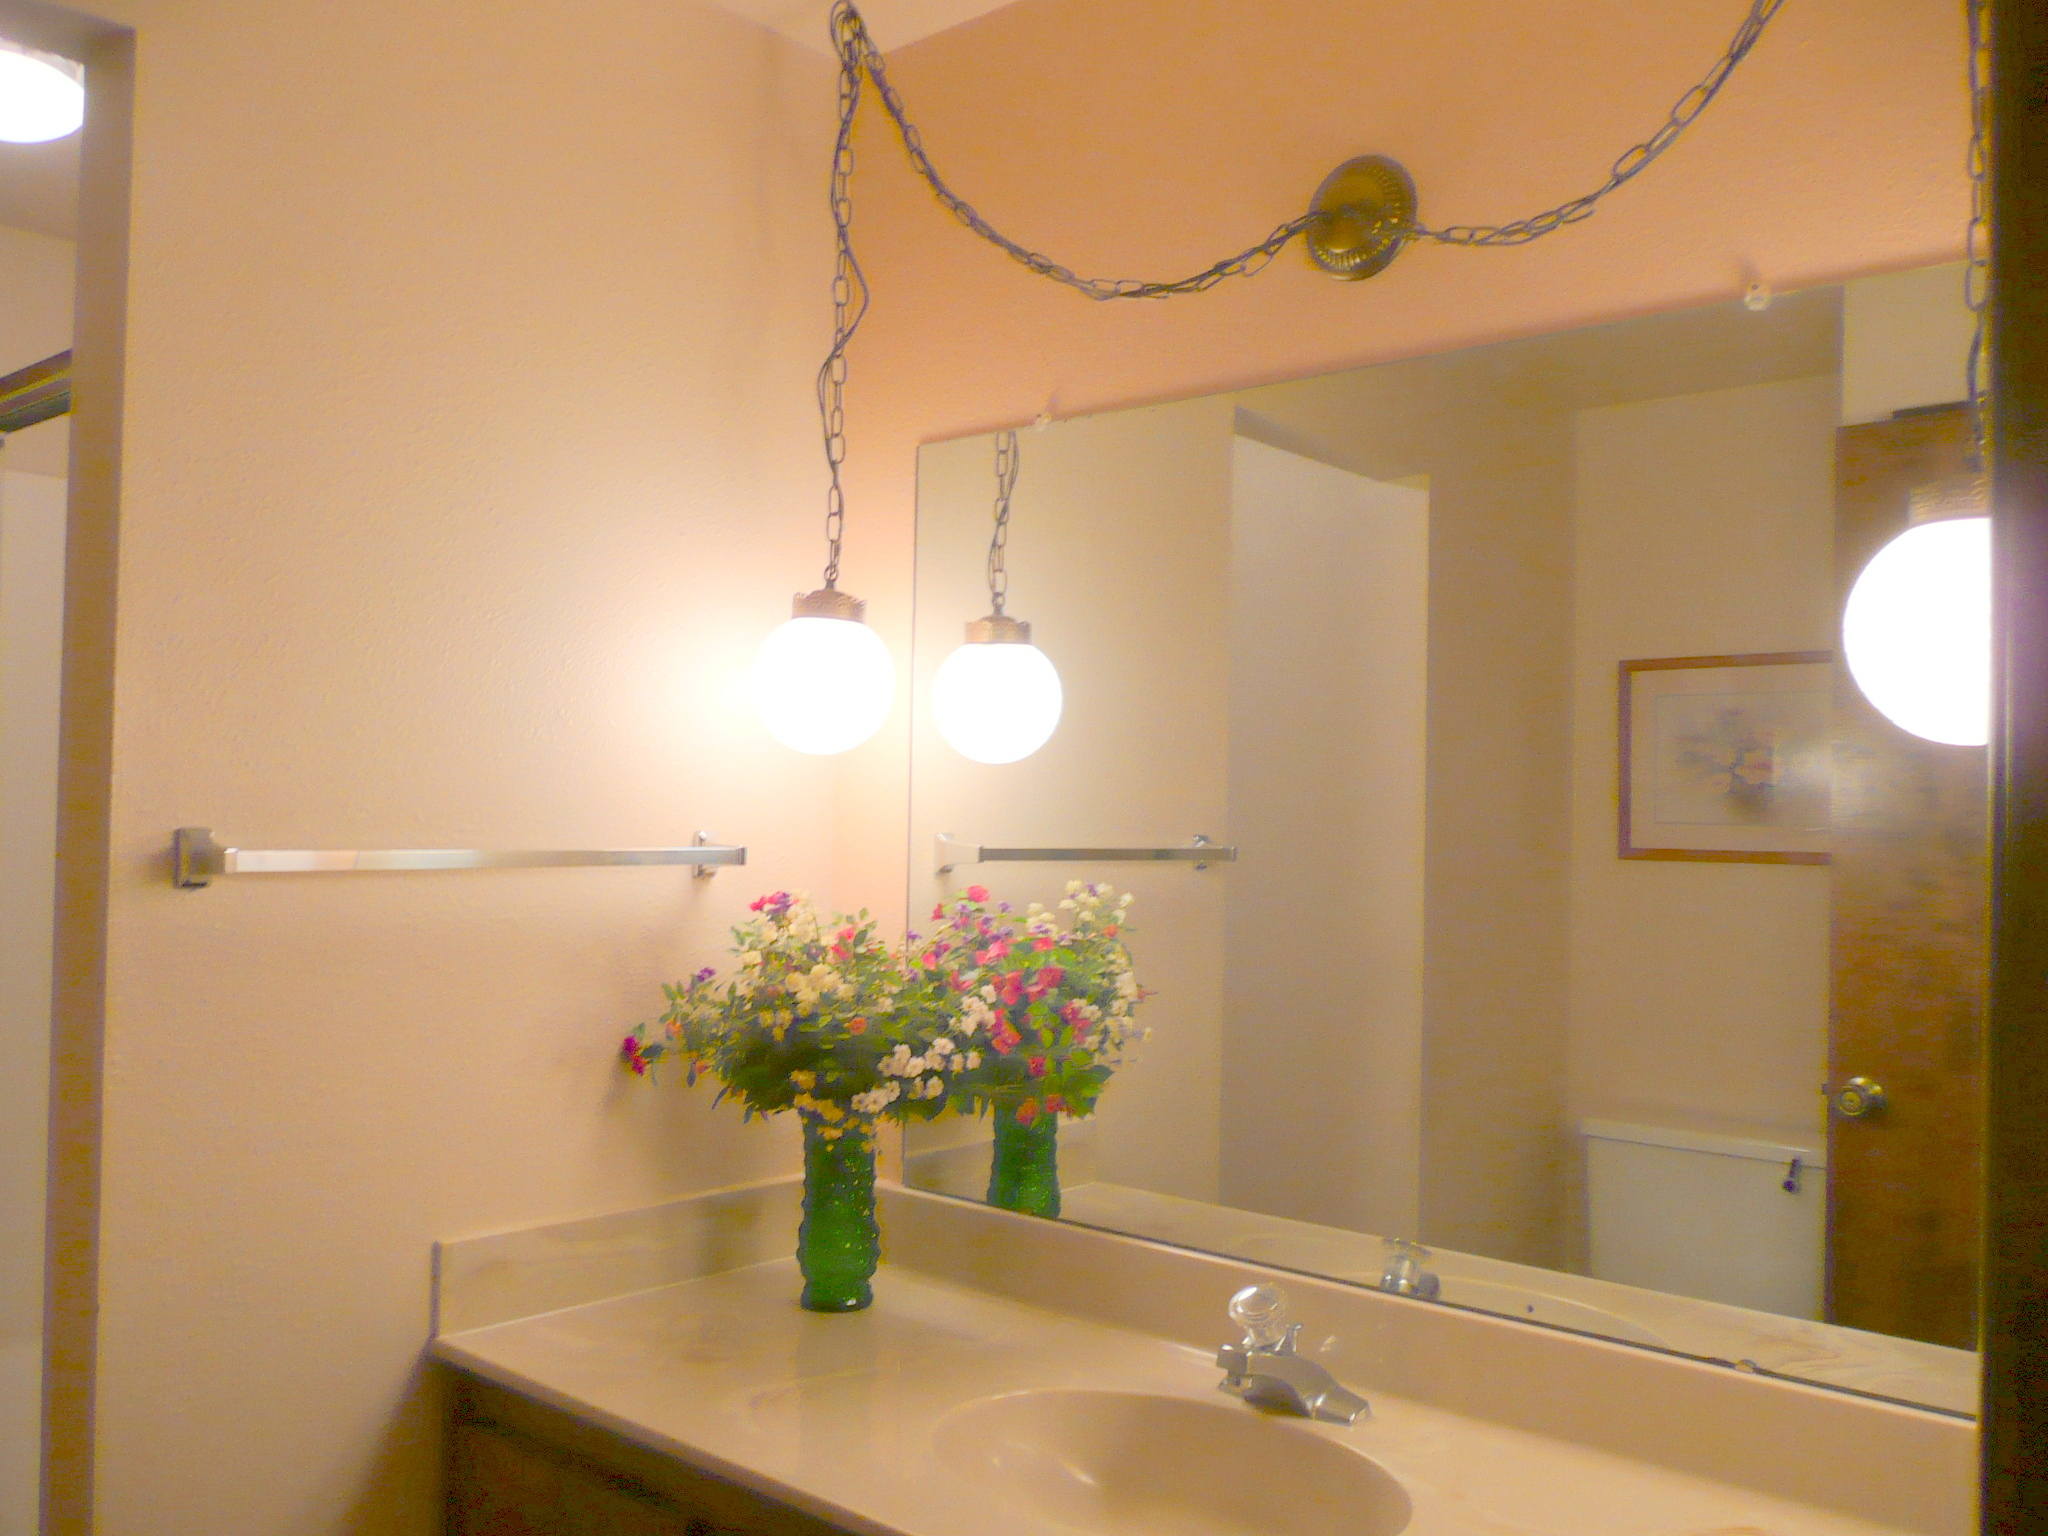 Updating Bathroom Vanity Lighting – Tips for Home Sellers